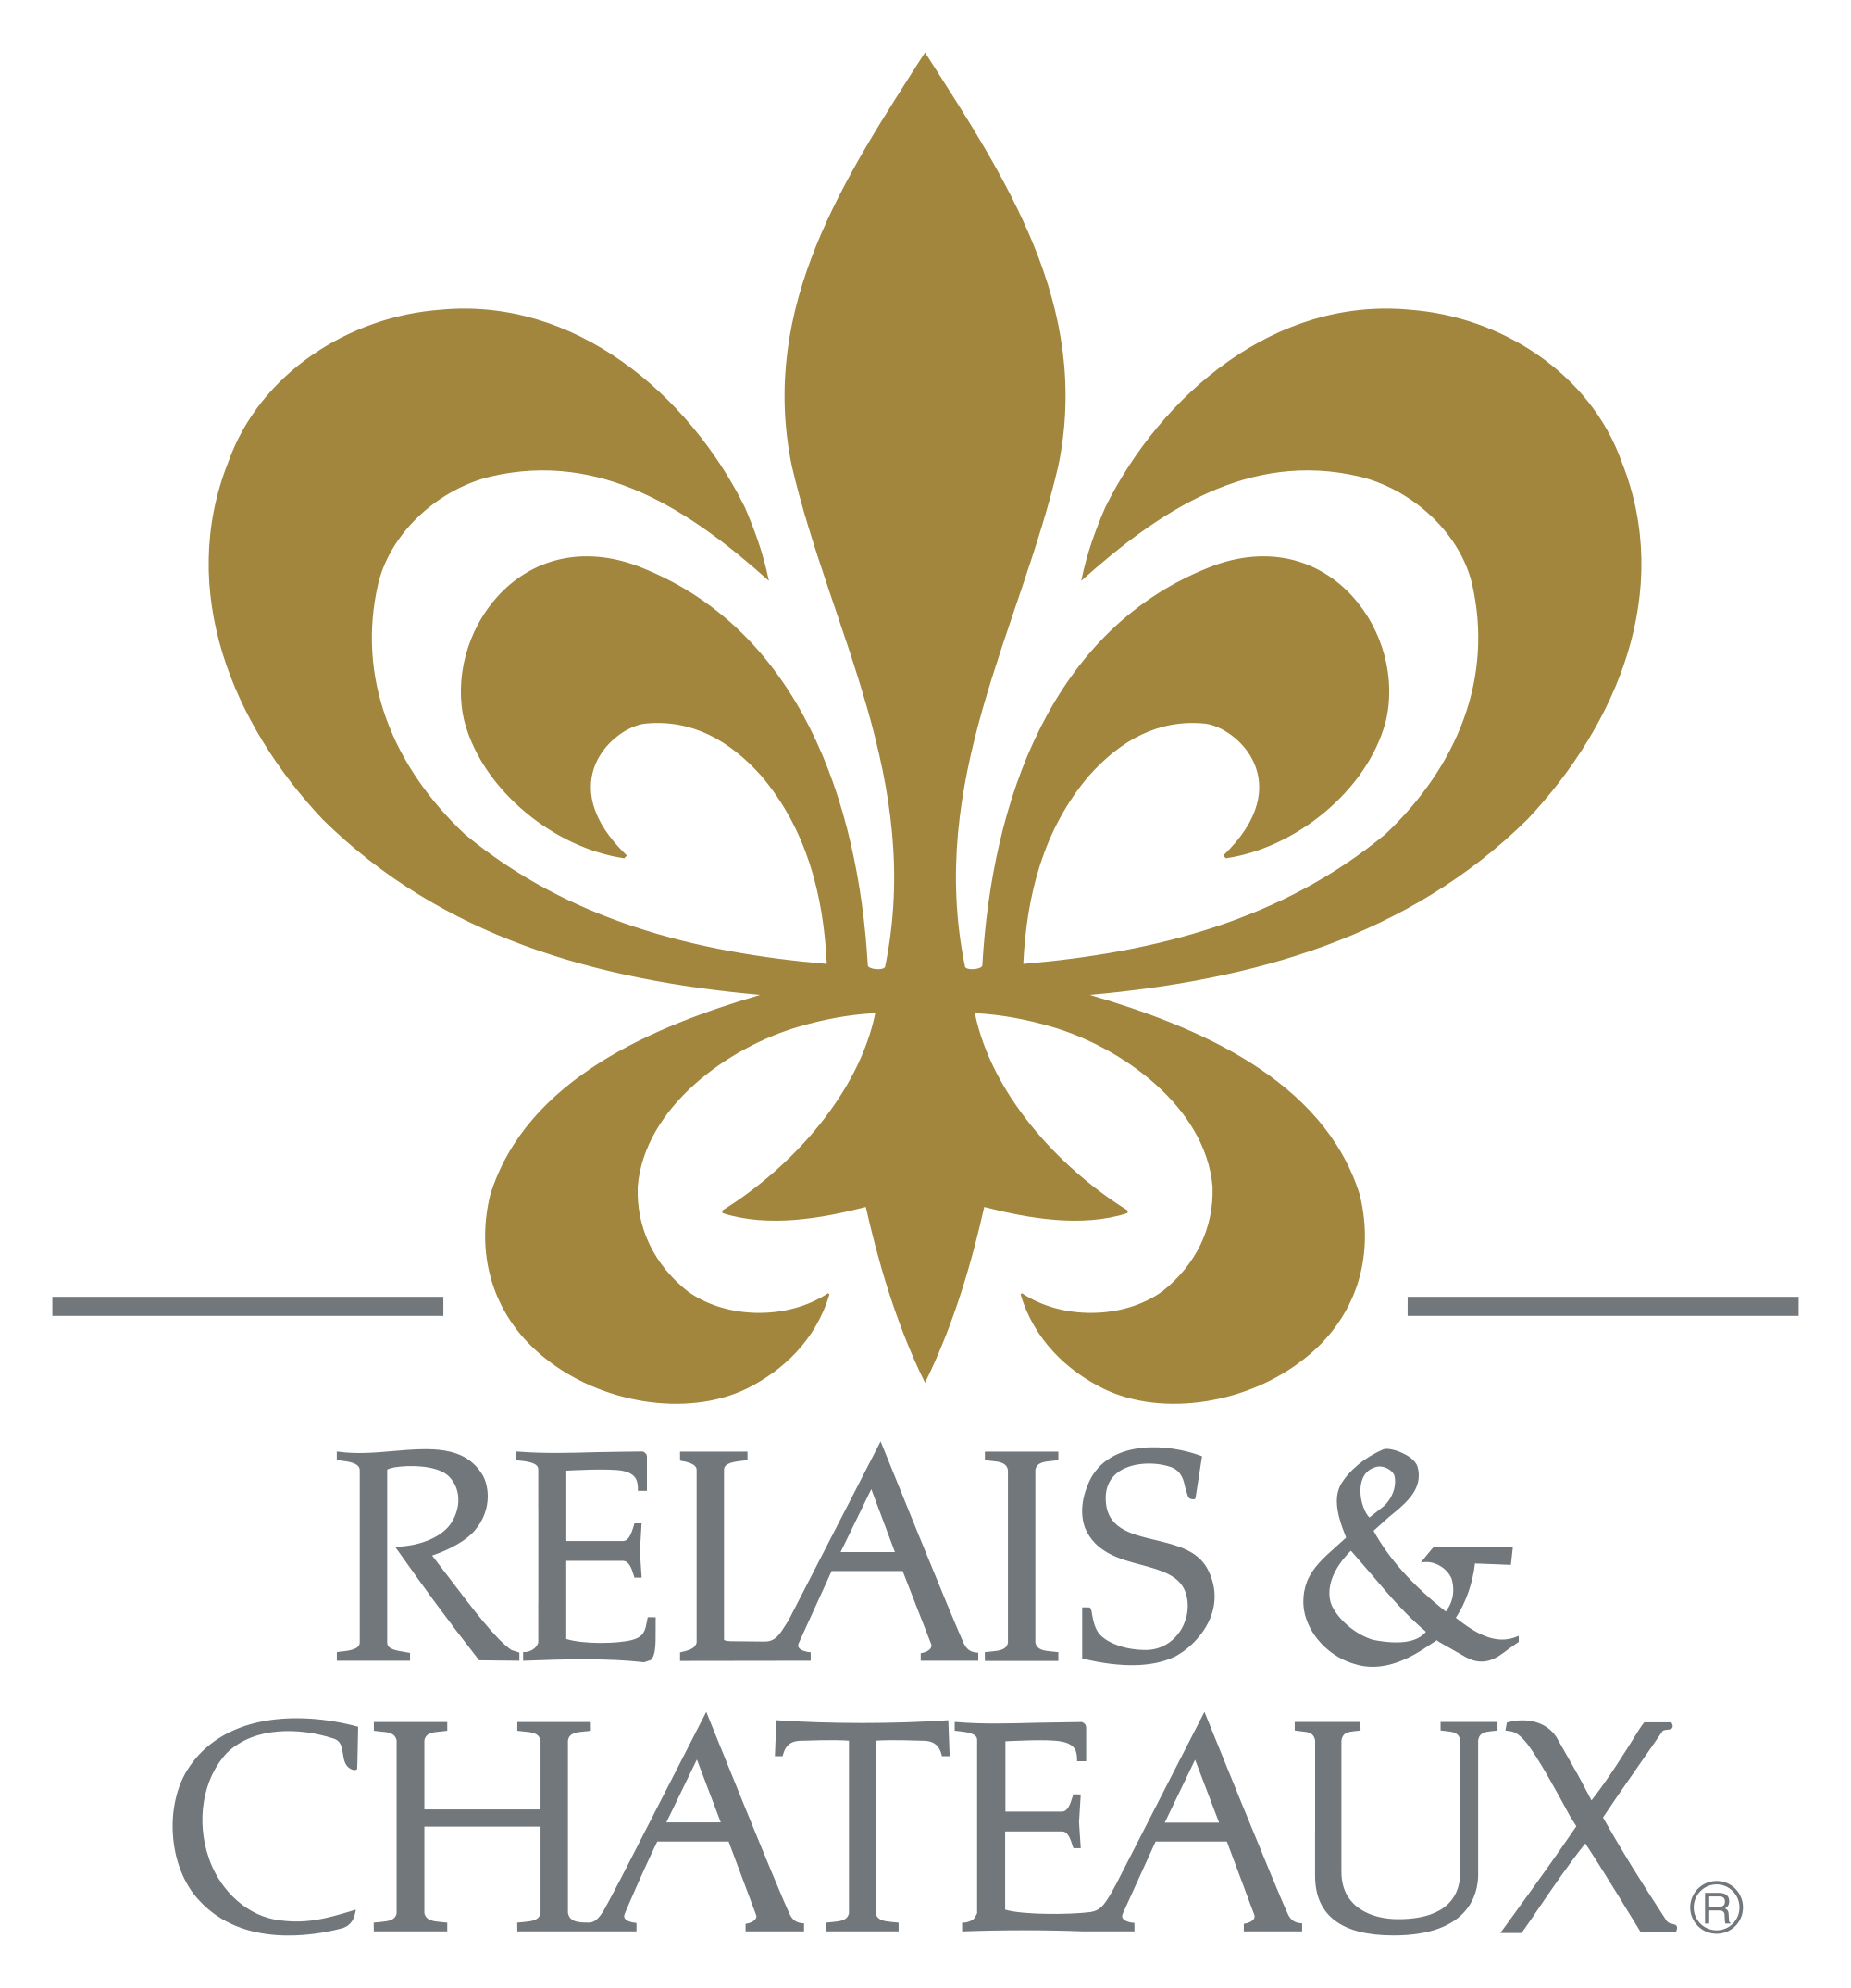 relais chateaux logo - Google-søk (With images) | Luxury beach ...